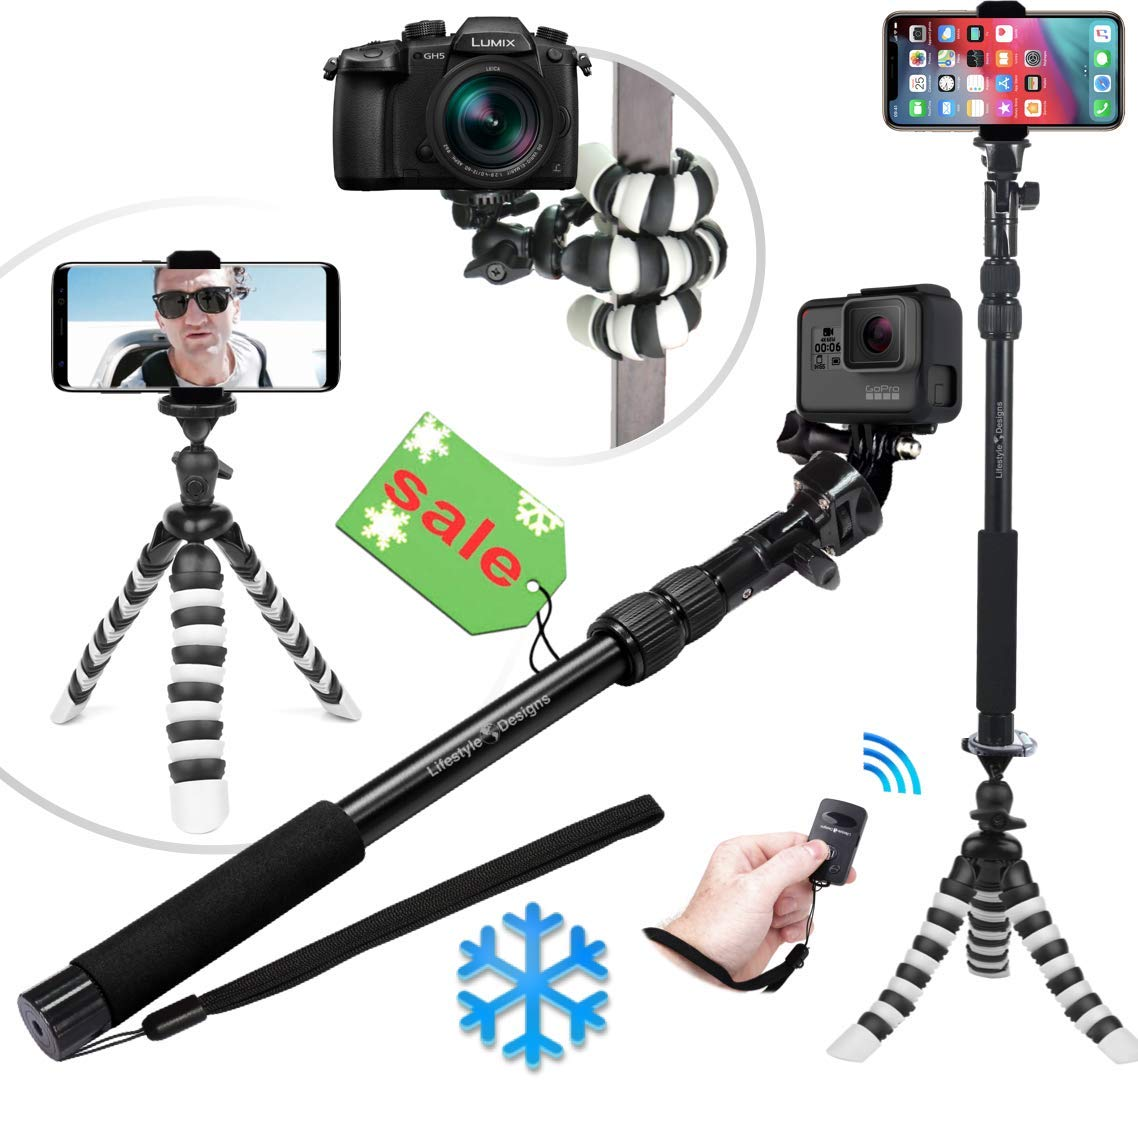 NEW HD Flexible Tripod & Selfie Stick 6-in-1 Kit w/ Bluetooth Remote – Best Video & Vlog Stand for Any Phone, GoPro or Camera: iPhone XS Max / XS / X / 8 / 7 / 6 / Plus, Samsung S9, Hero 7, etc. Lifestyle Designs IQ-V02L-0HMM